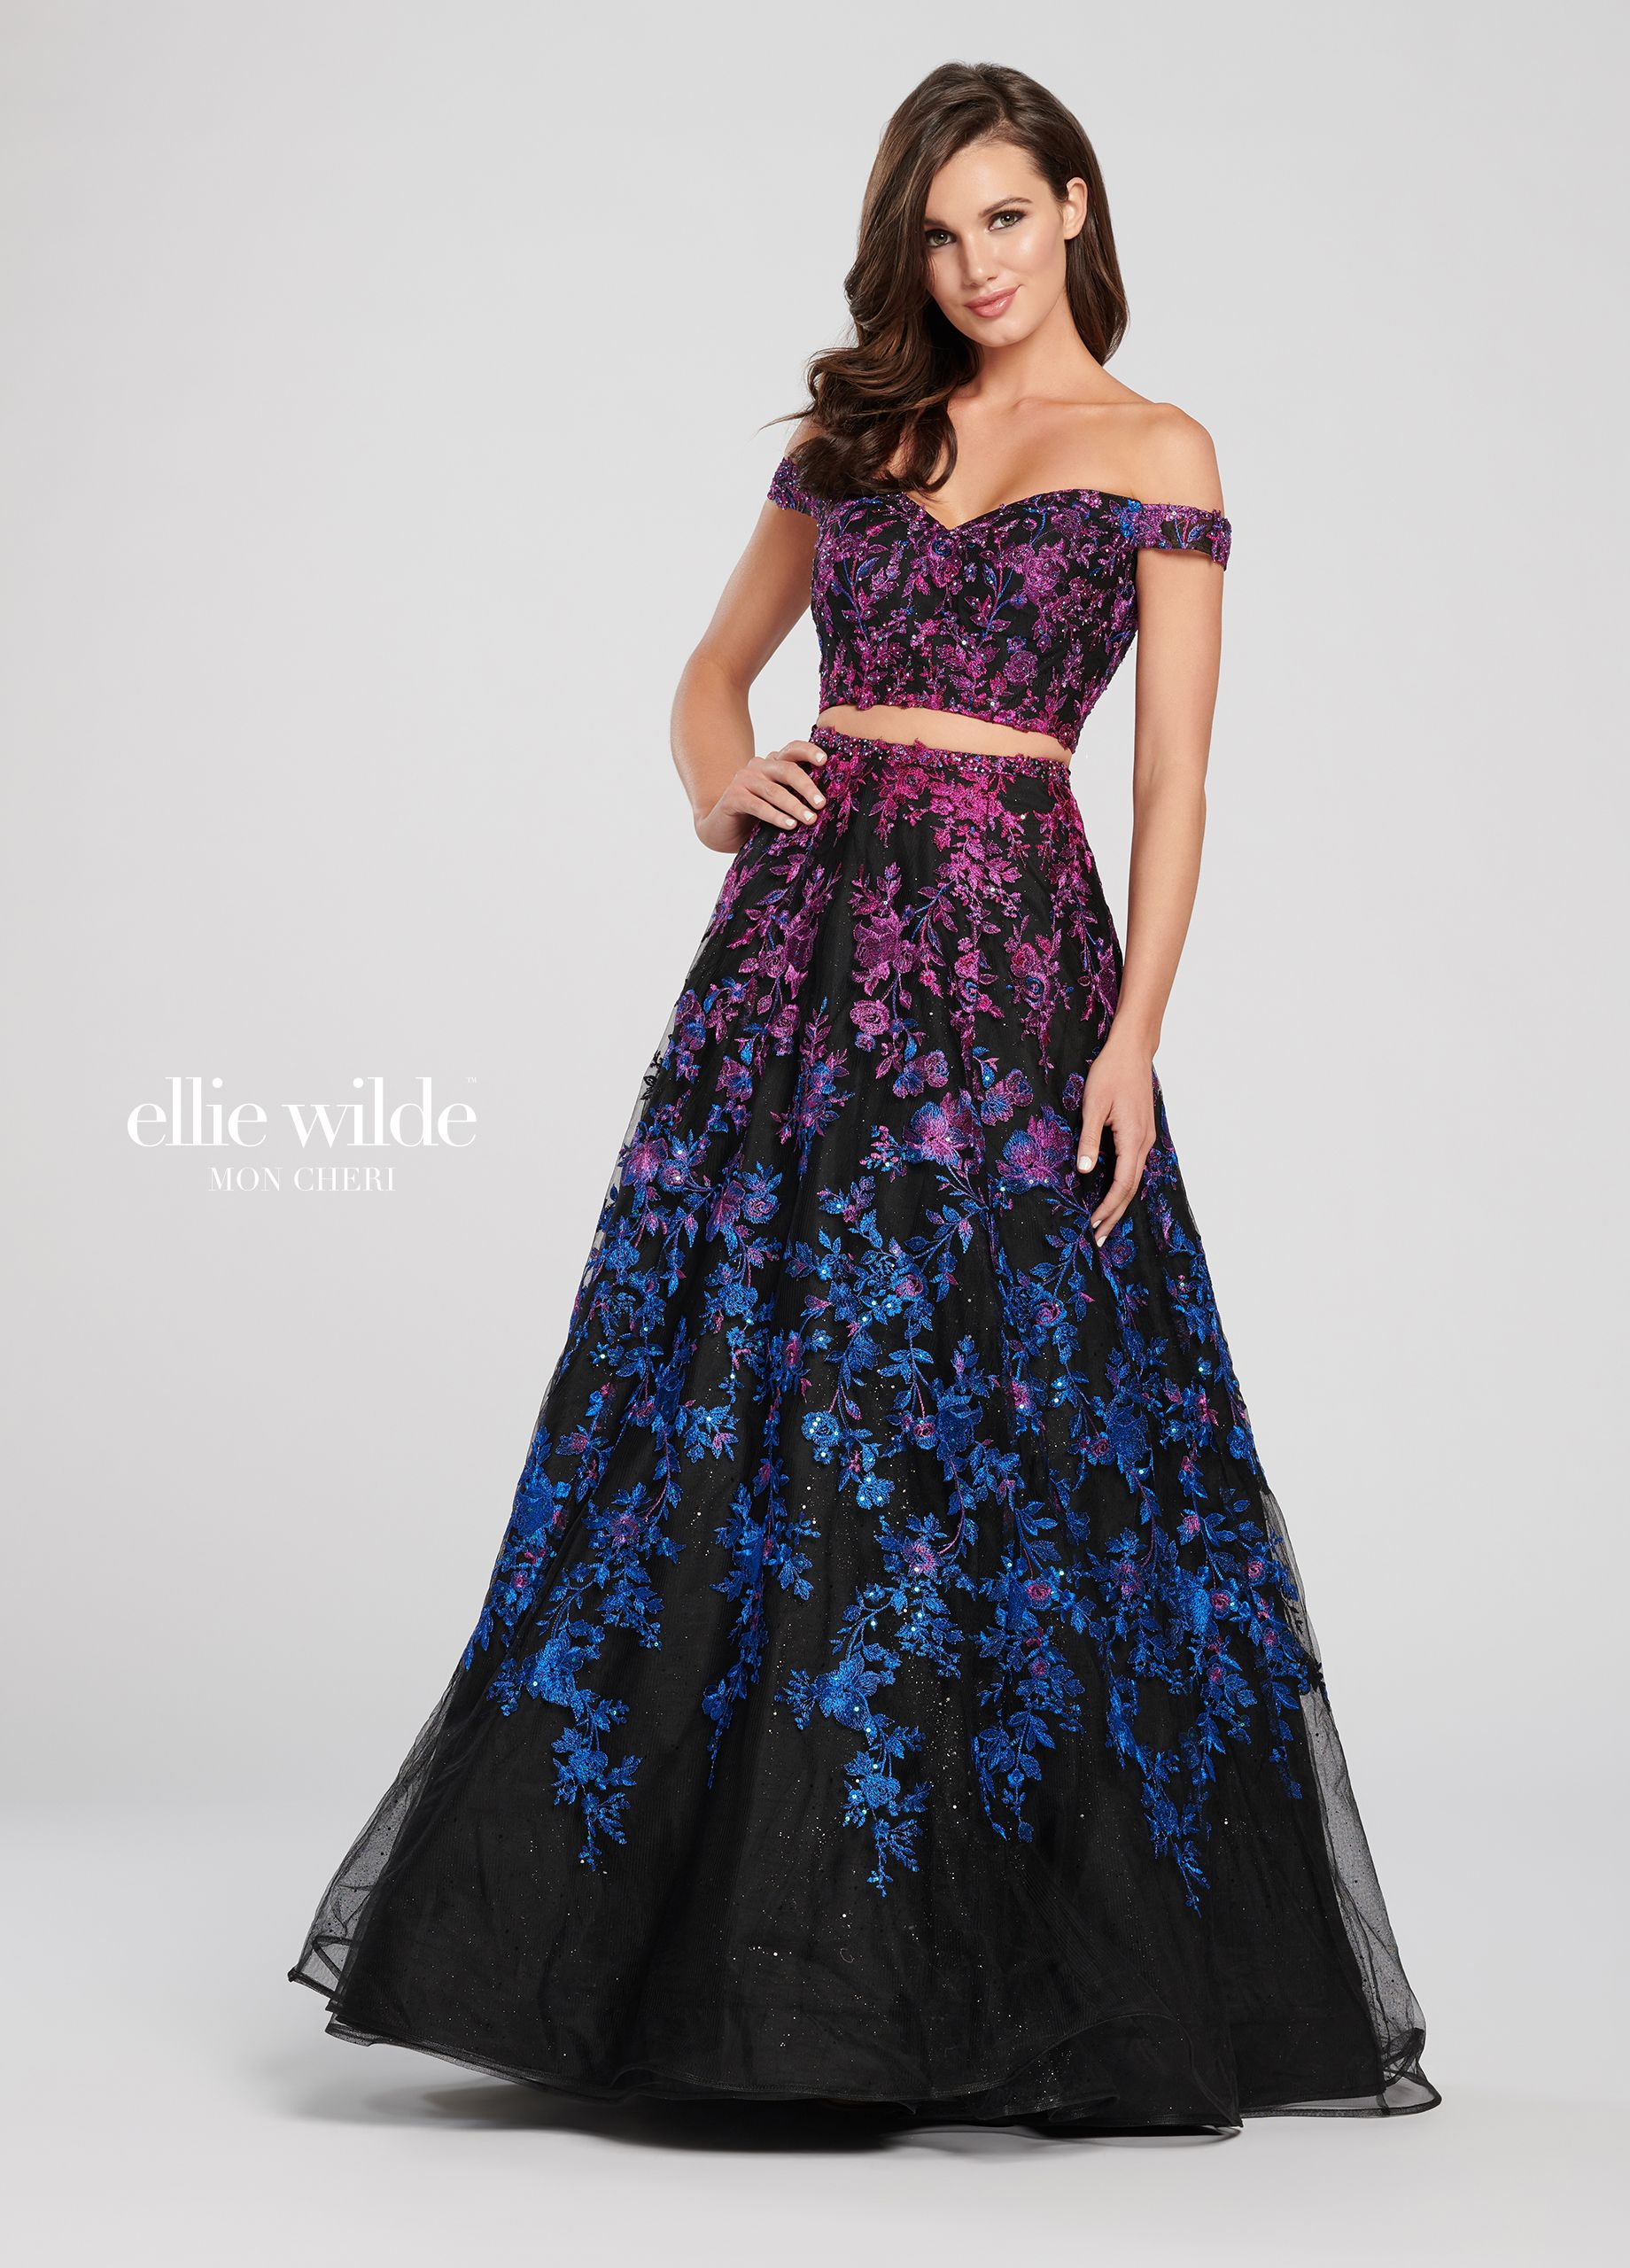 99870046ce5 2-Piece Embroidered Lace with Sequin Ombre Dress Set- EW119057 ...